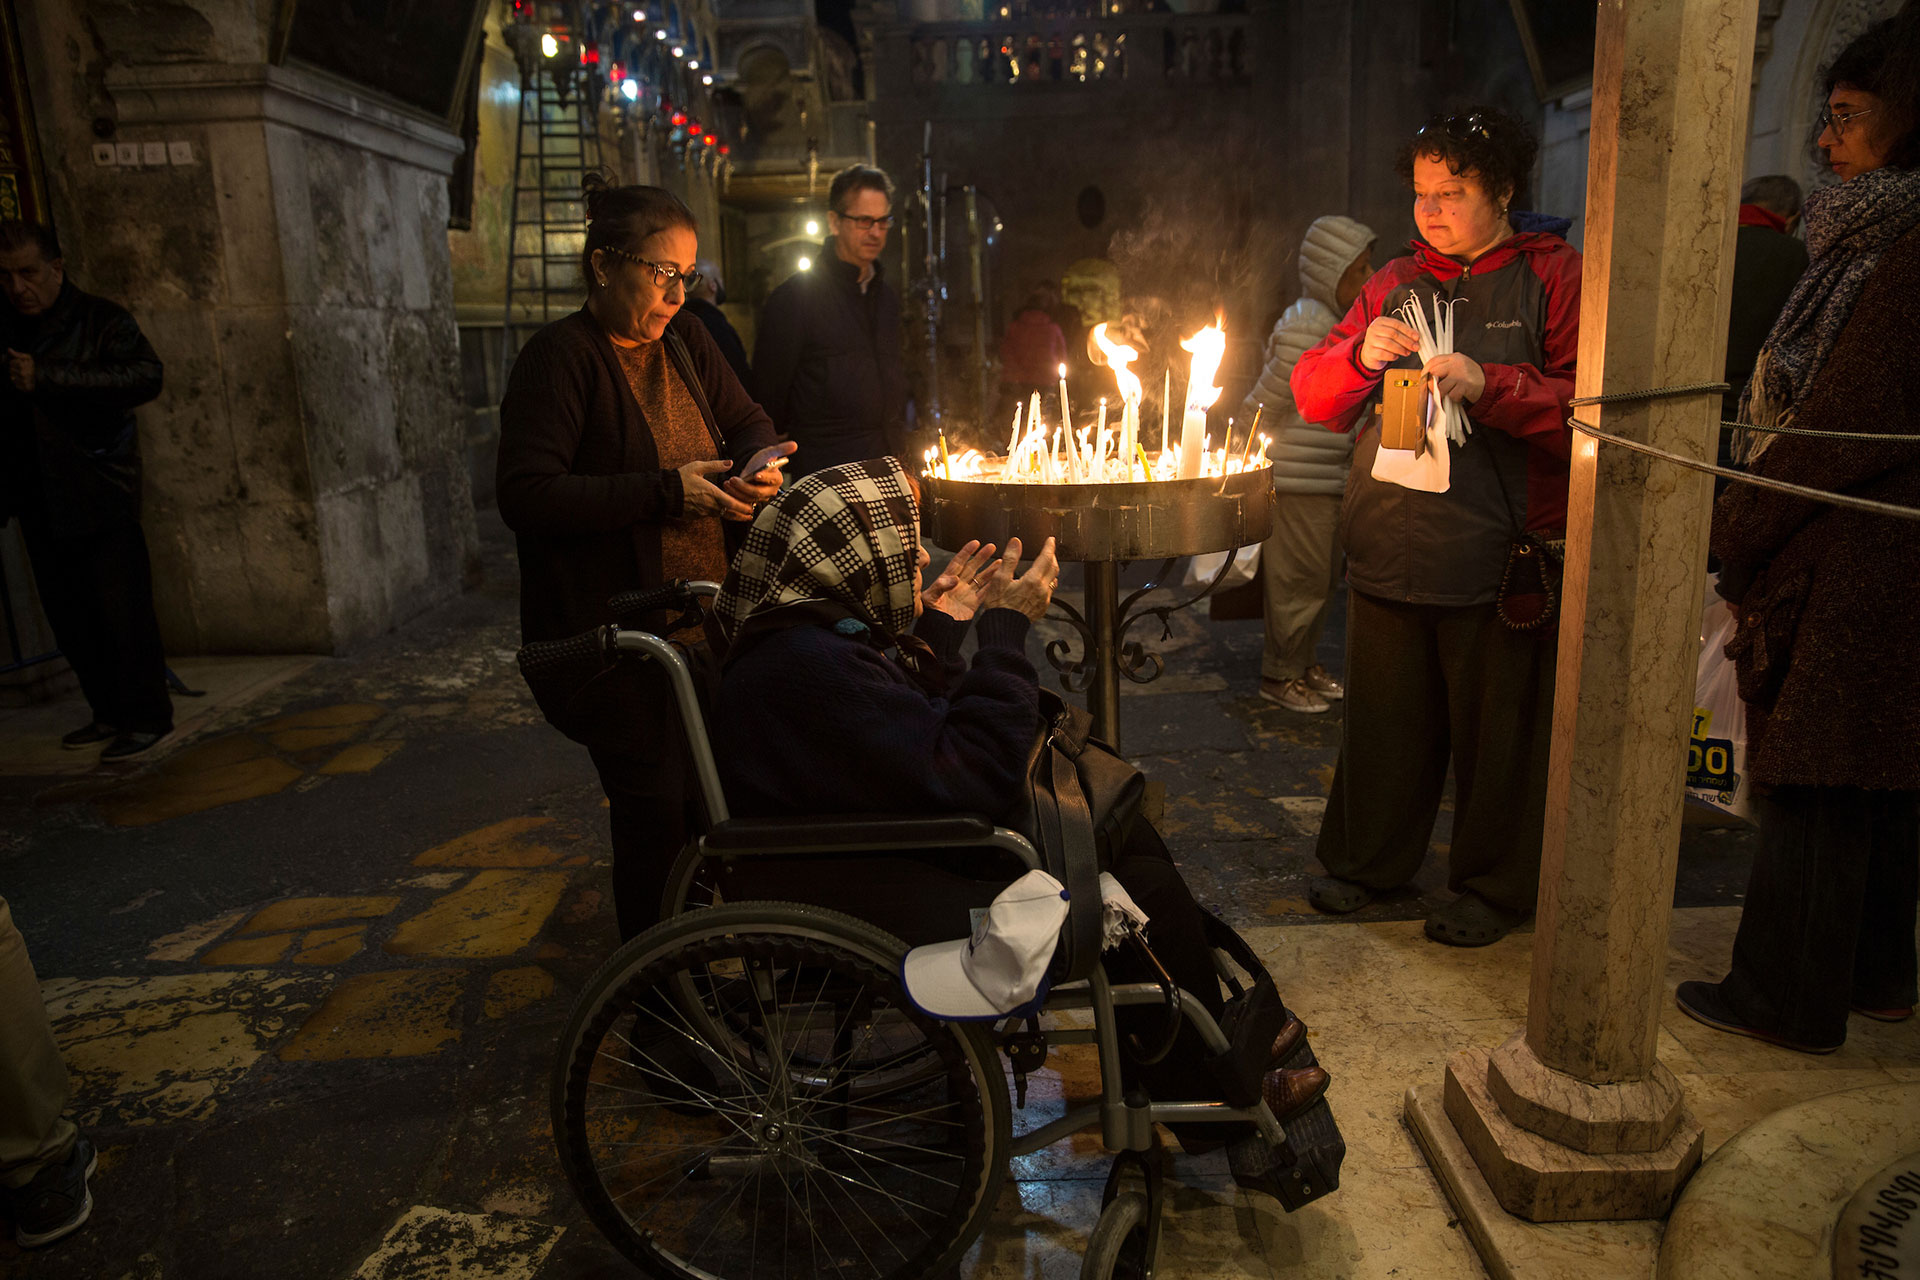 Iraqi Christians Ester Shair ,82, is seen in her wheel chair as she visits the Church of the Church of the Holy Sepulchre in the Old City of Jerusalem during Good Friday on April 30,2018.The family left Baghdad after the Gulf War and some family members emigrated to the United States and Ester and her daughter moved to Australia. (Photo by Heidi Levine for The GroundTruth Project)